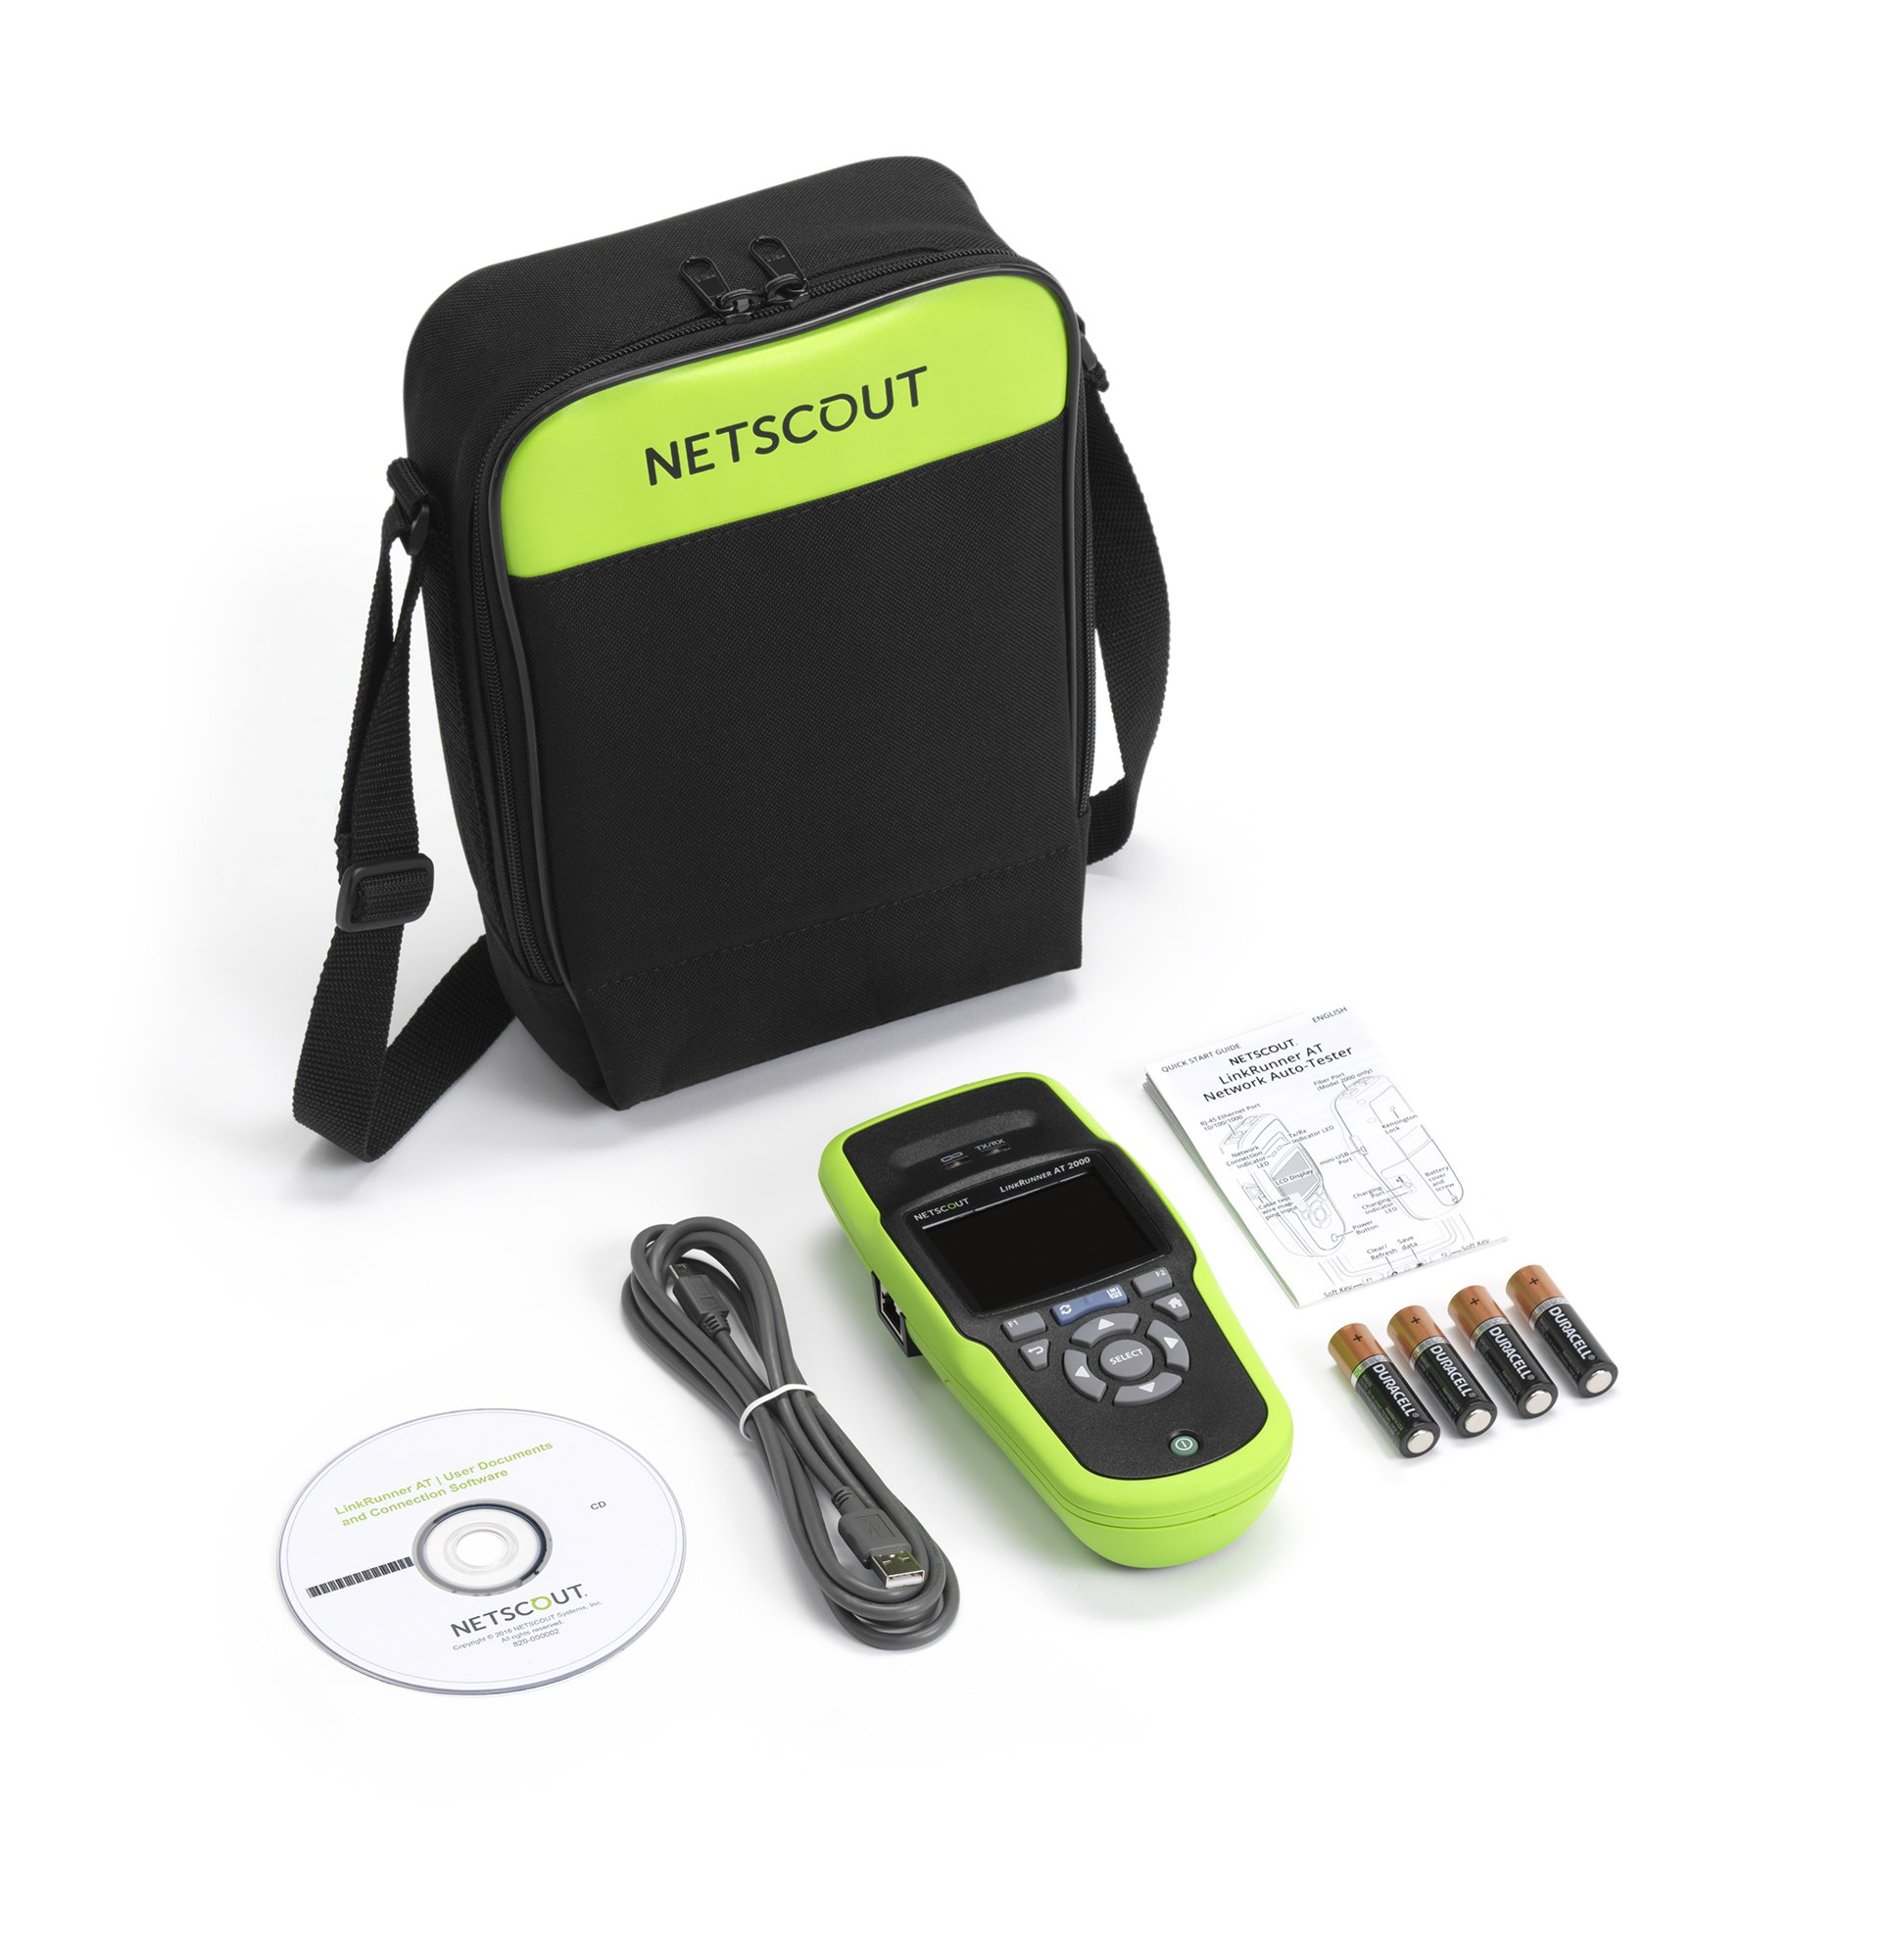 NETSCOUT LRAT-1000 LinkRunner AT Copper Ethernet Network Tester by NETSCOUT